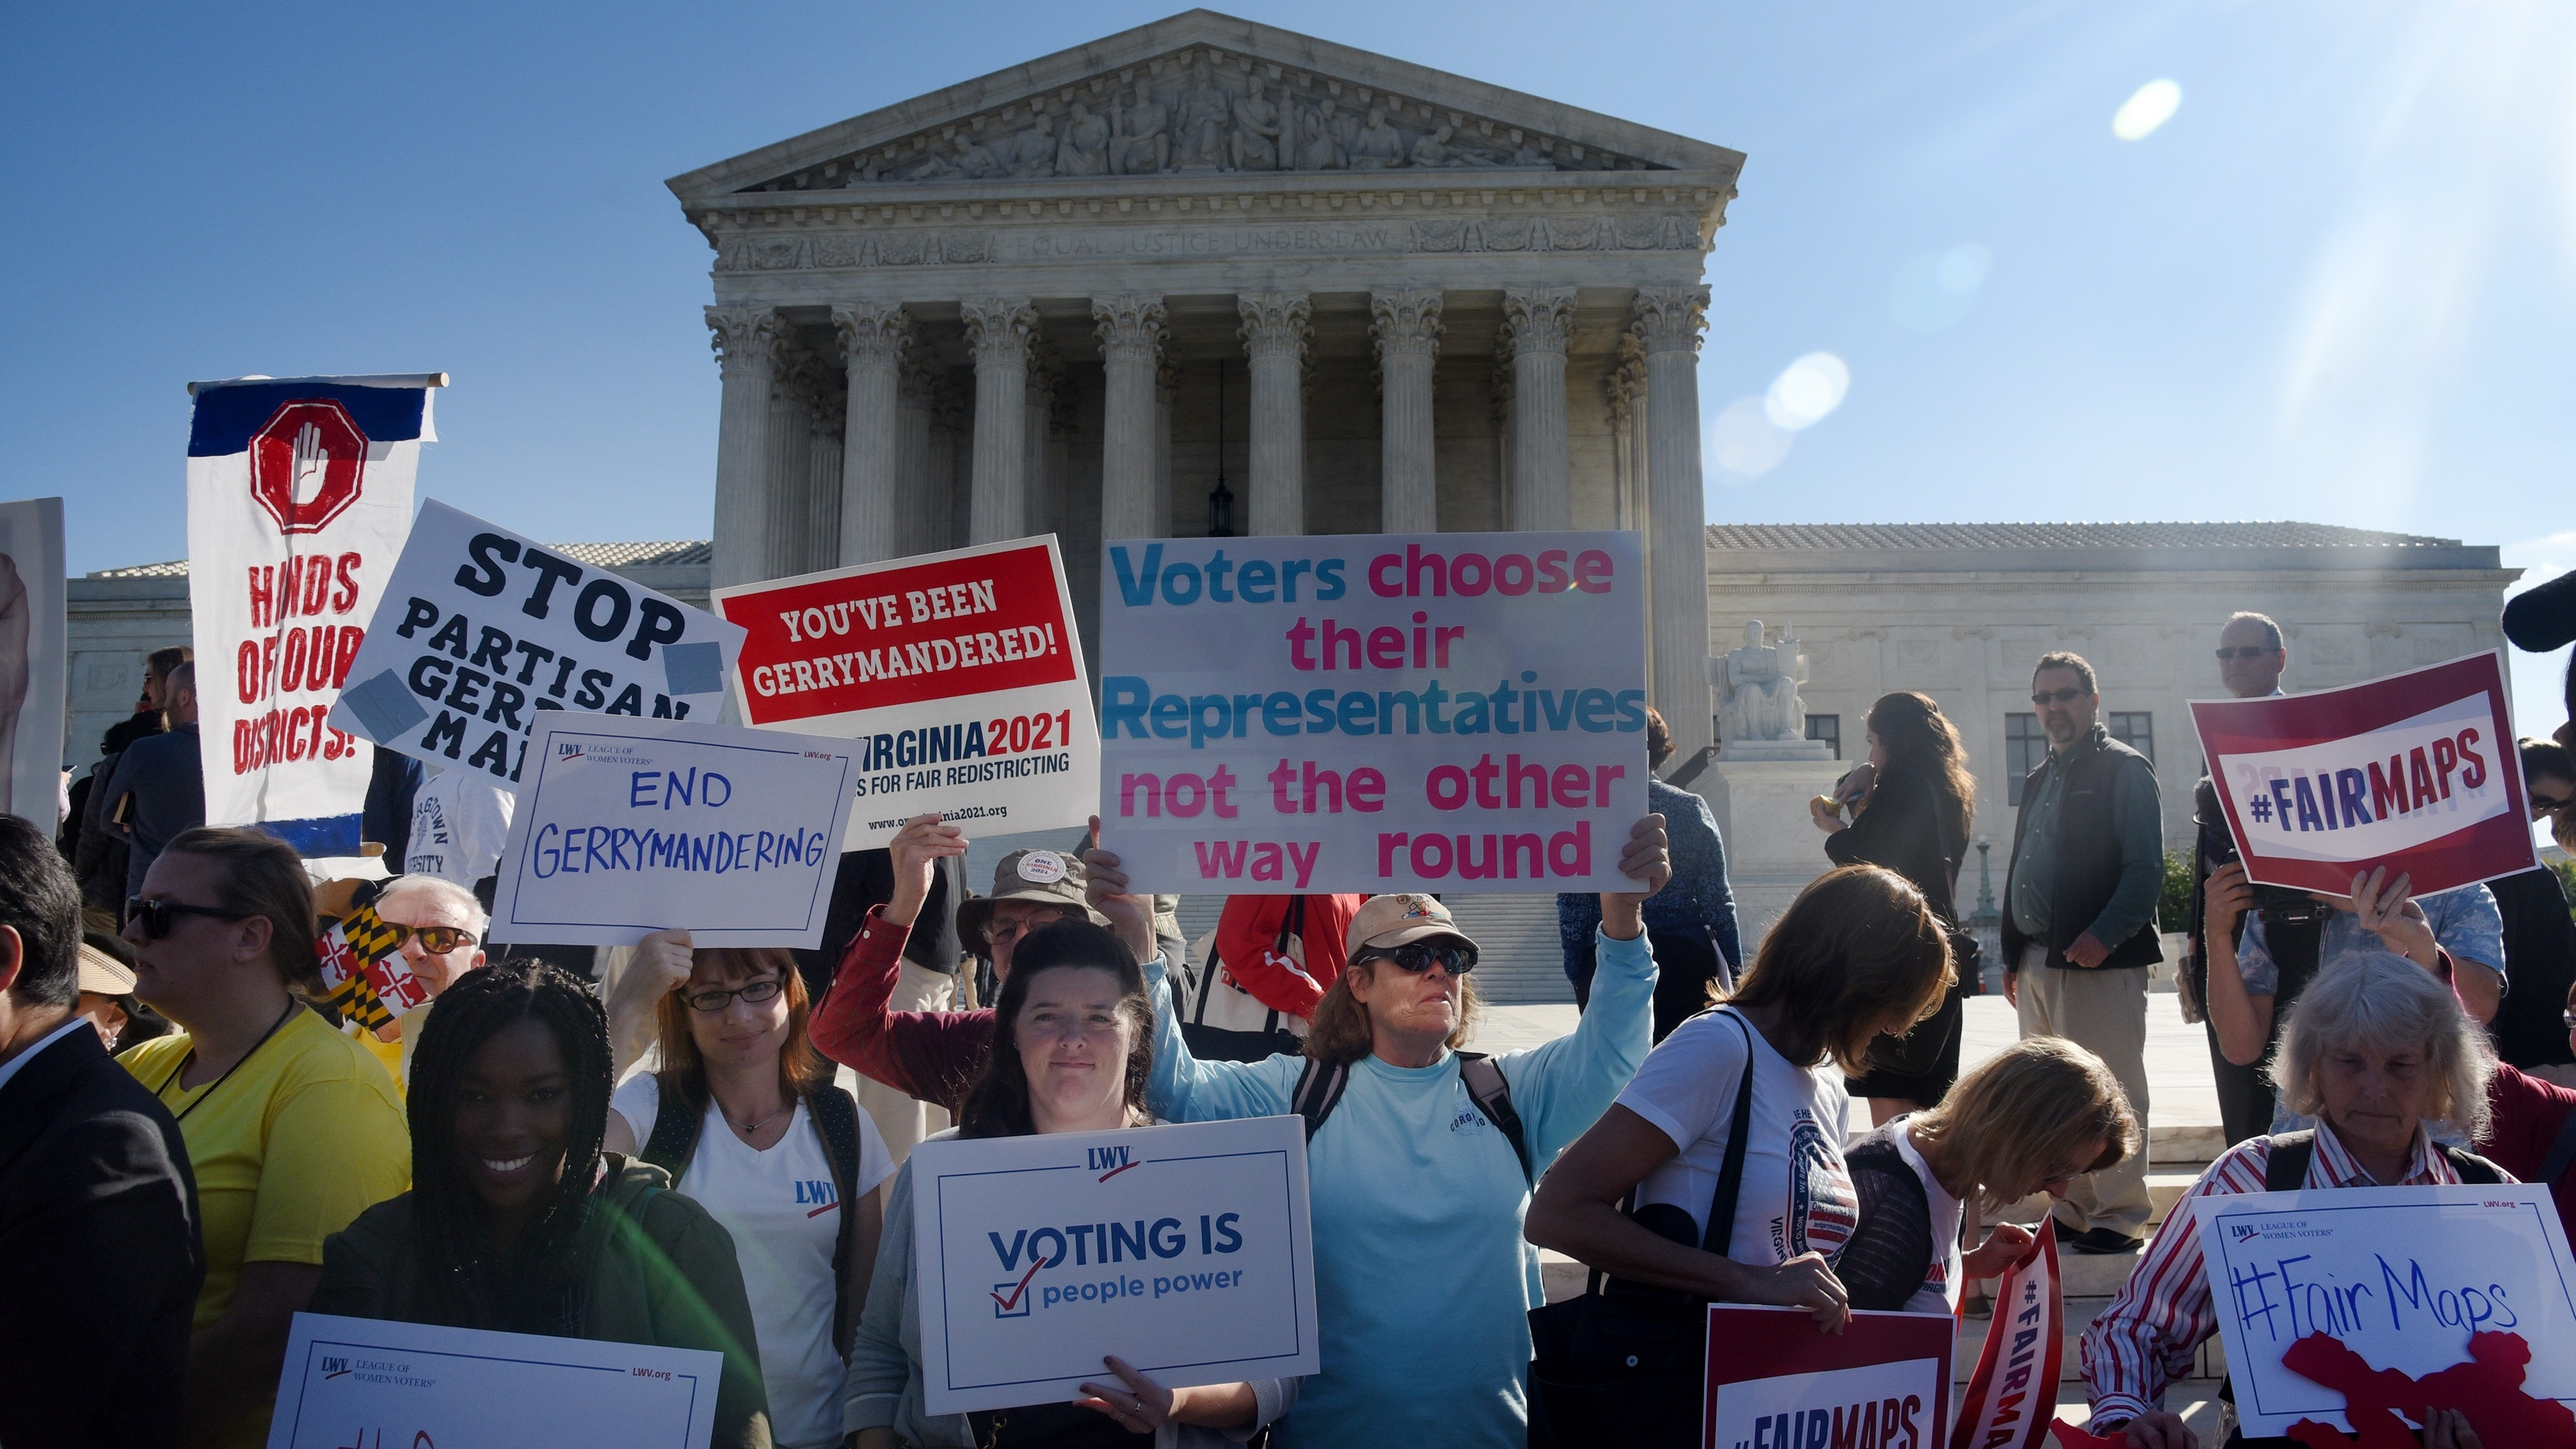 npr.org - Nina Totenberg - The Supreme Court Takes Another Look At Partisan Redistricting